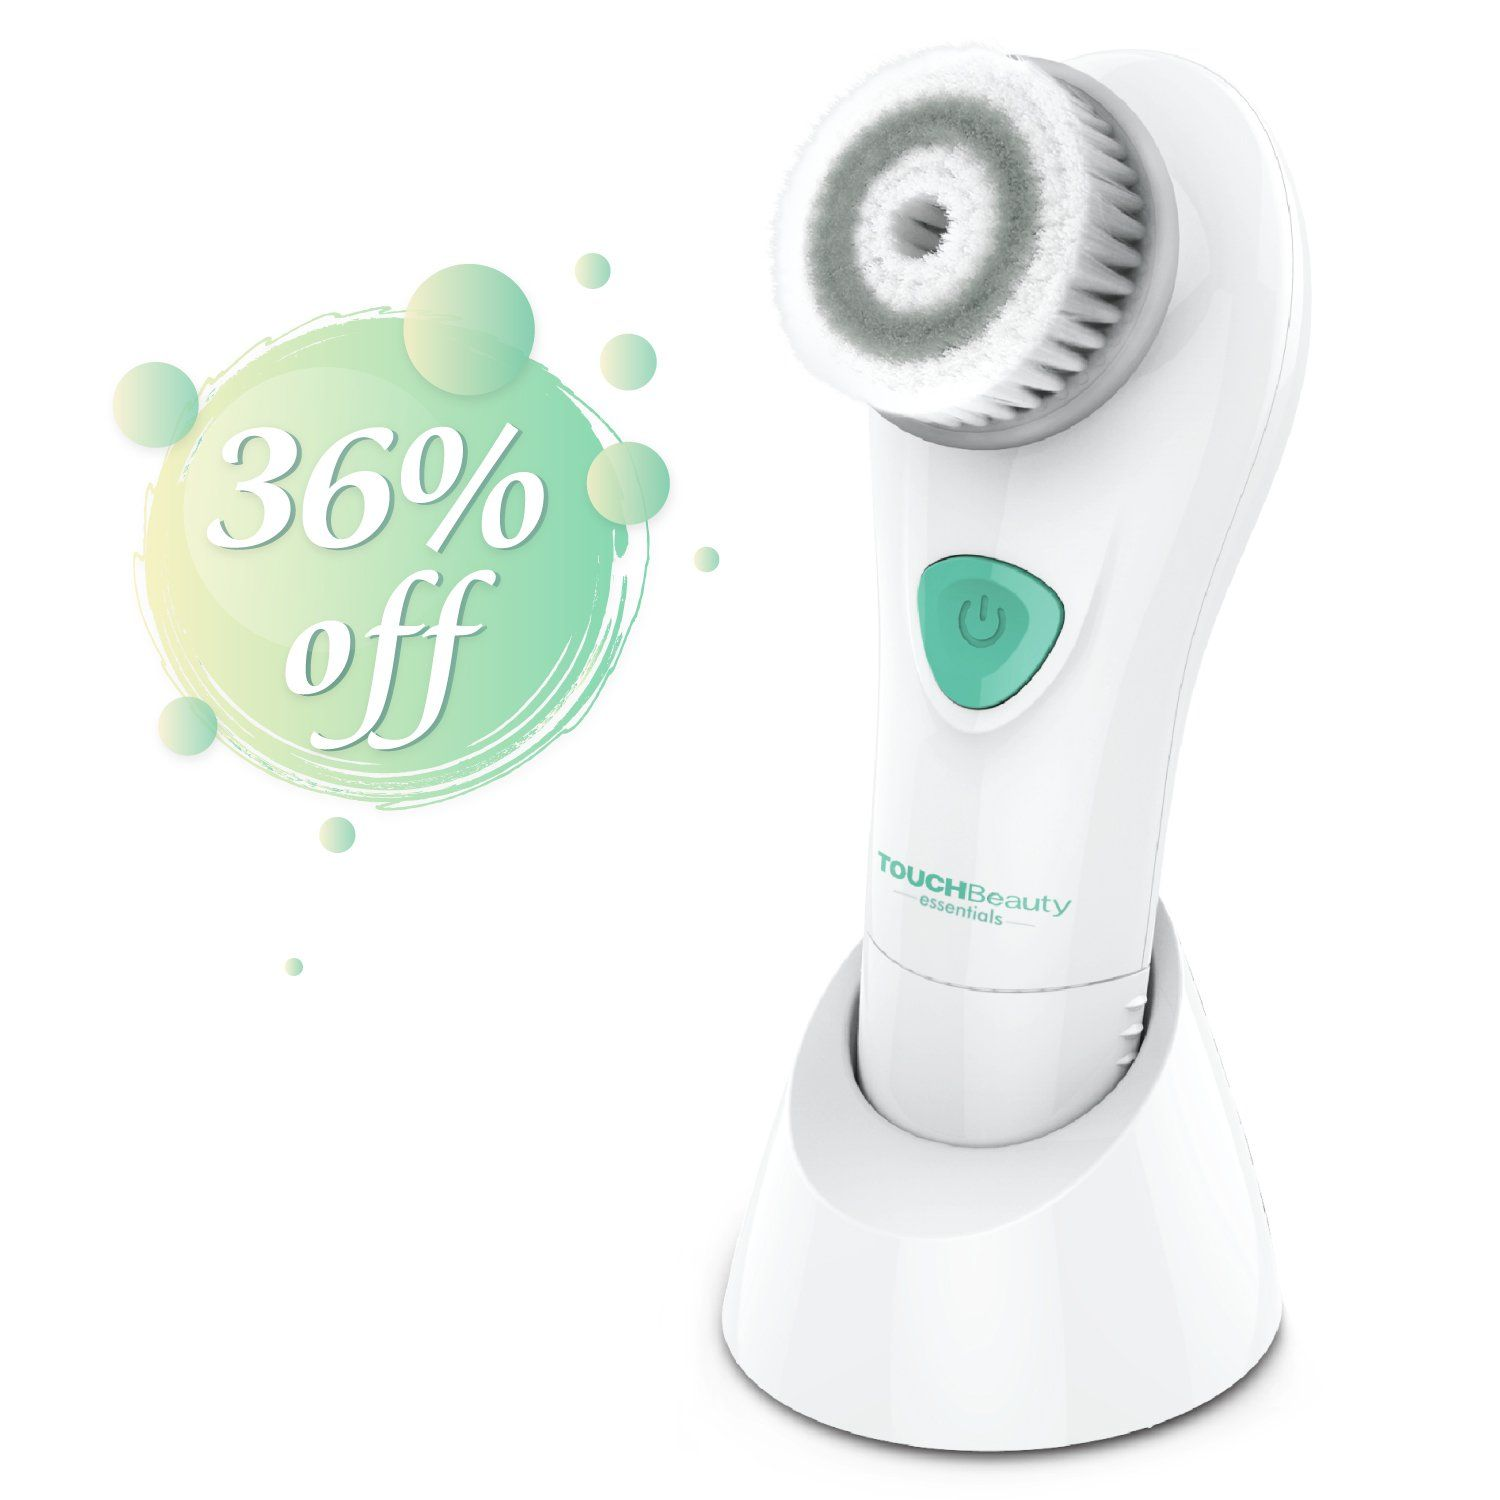 Sonic Facial Cleansing Brush Electronic Face Brushi œ Waterproof Facial Brush For Deep Clea Cleansing Brush Sonic Facial Cleansing Brush Facial Cleansing Brush